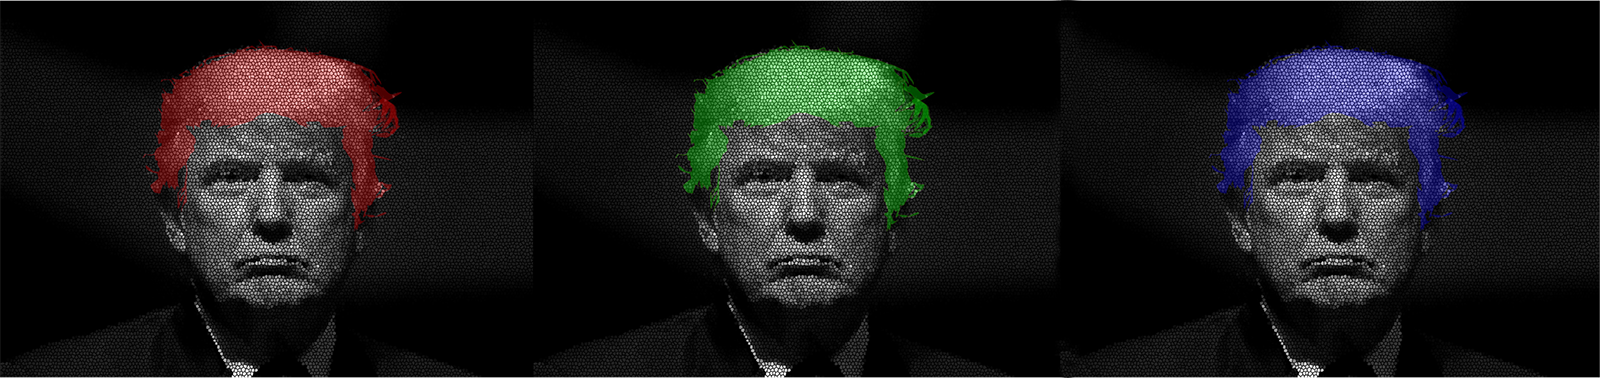 the trump files digital print artwork